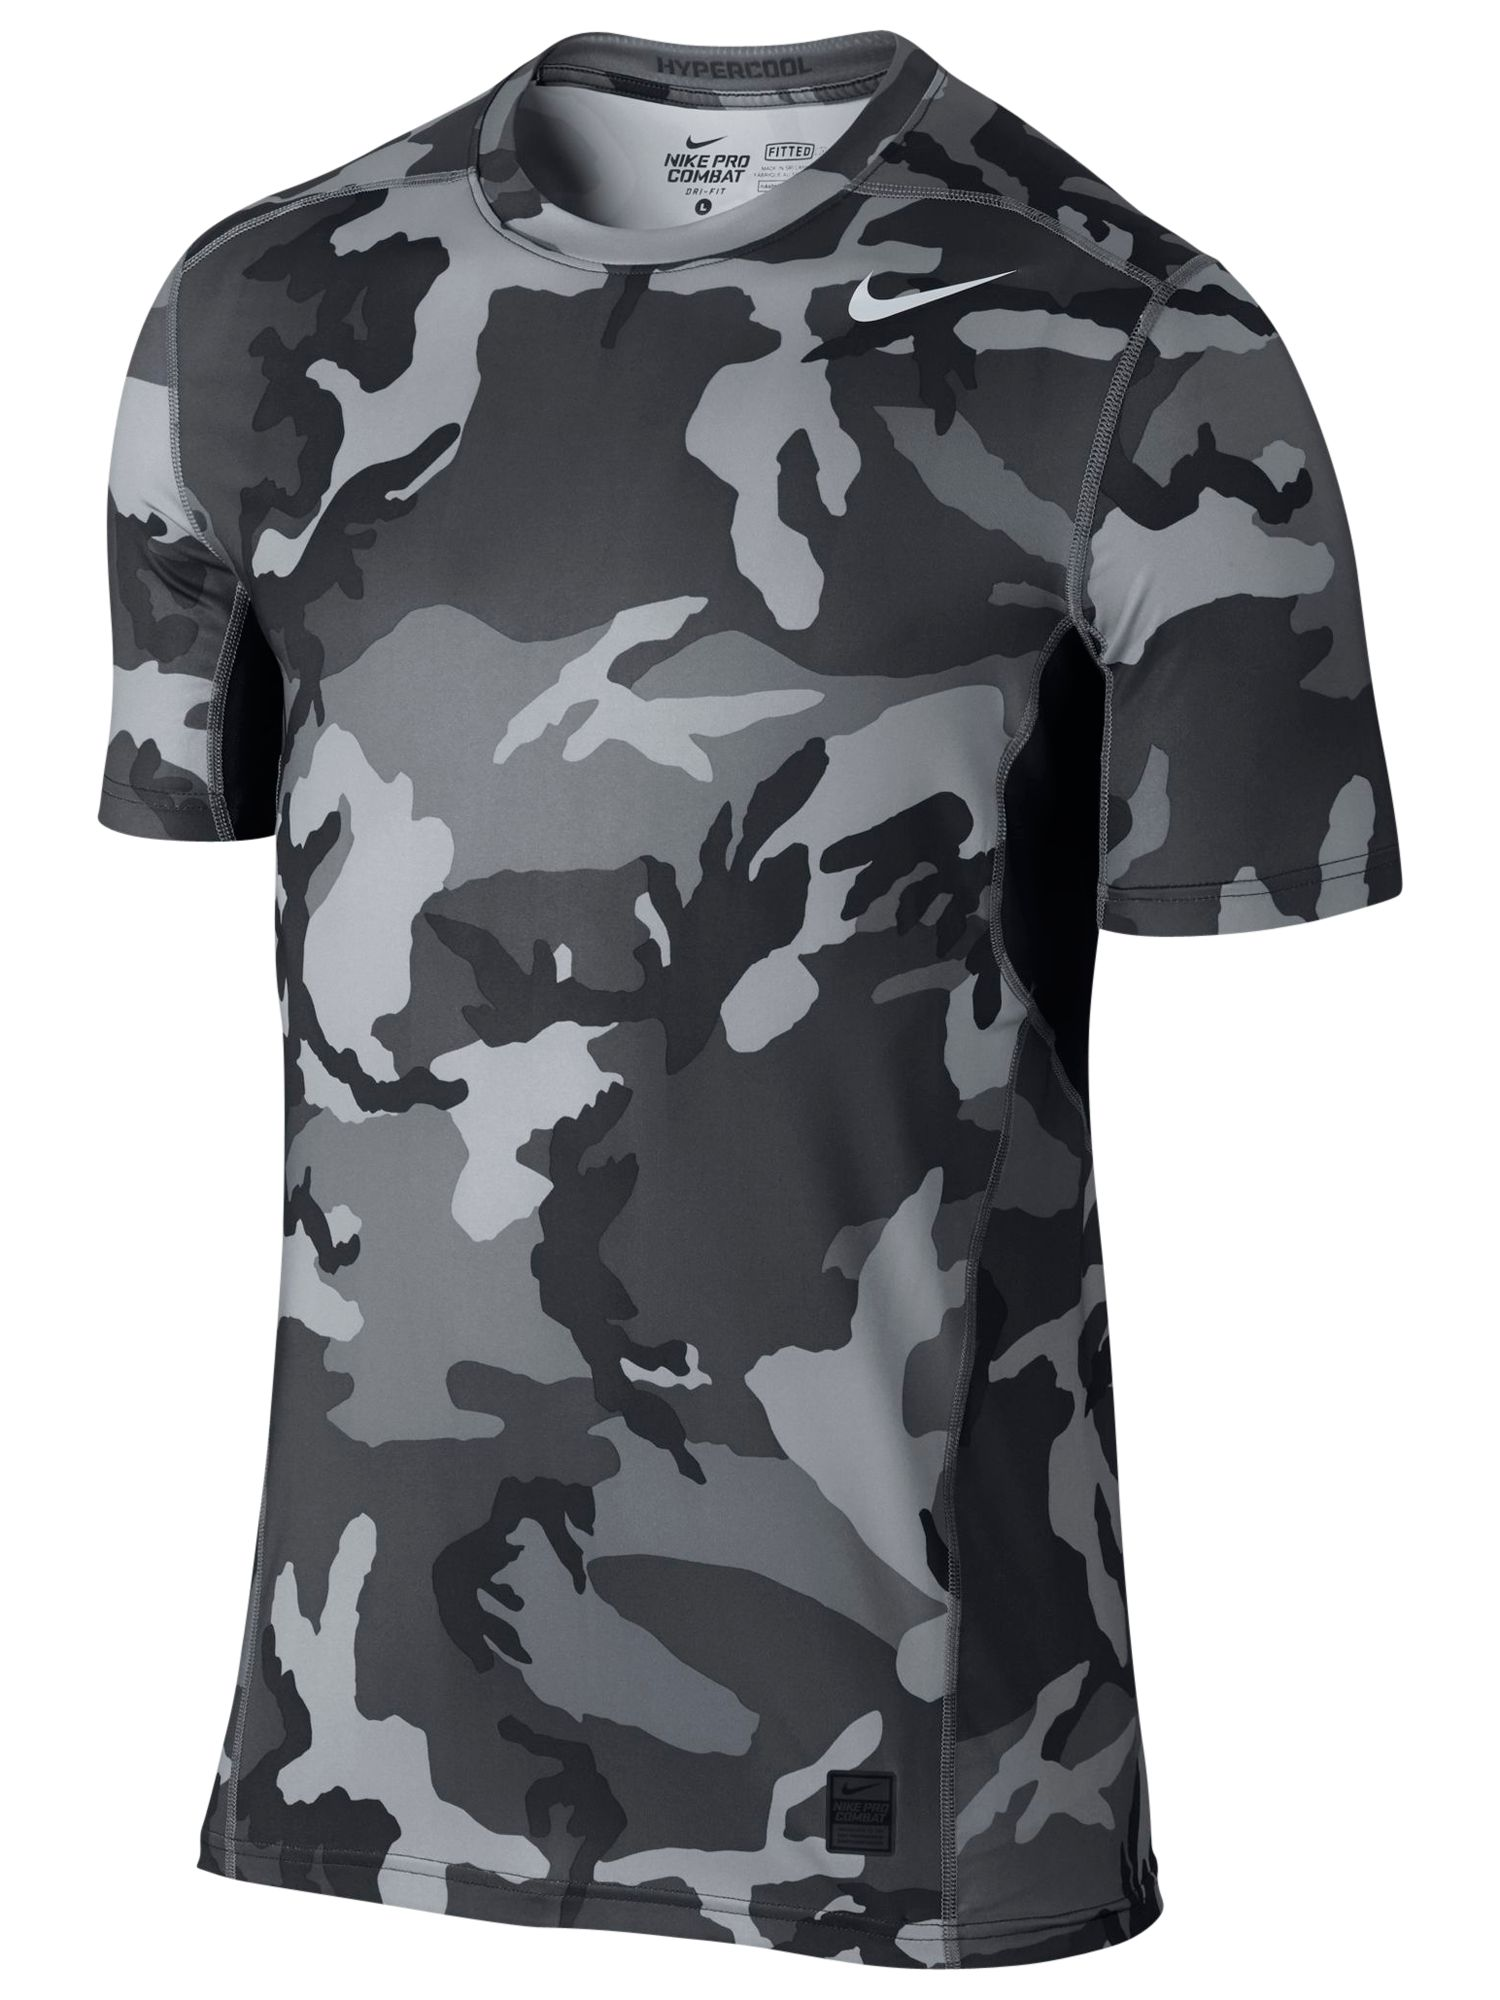 0fd992a5bc00d Nike Pro Combat Hypercool Camo Print Fitted 2.0 T-Shirt,  Anthracite/Charcoal at John Lewis & Partners